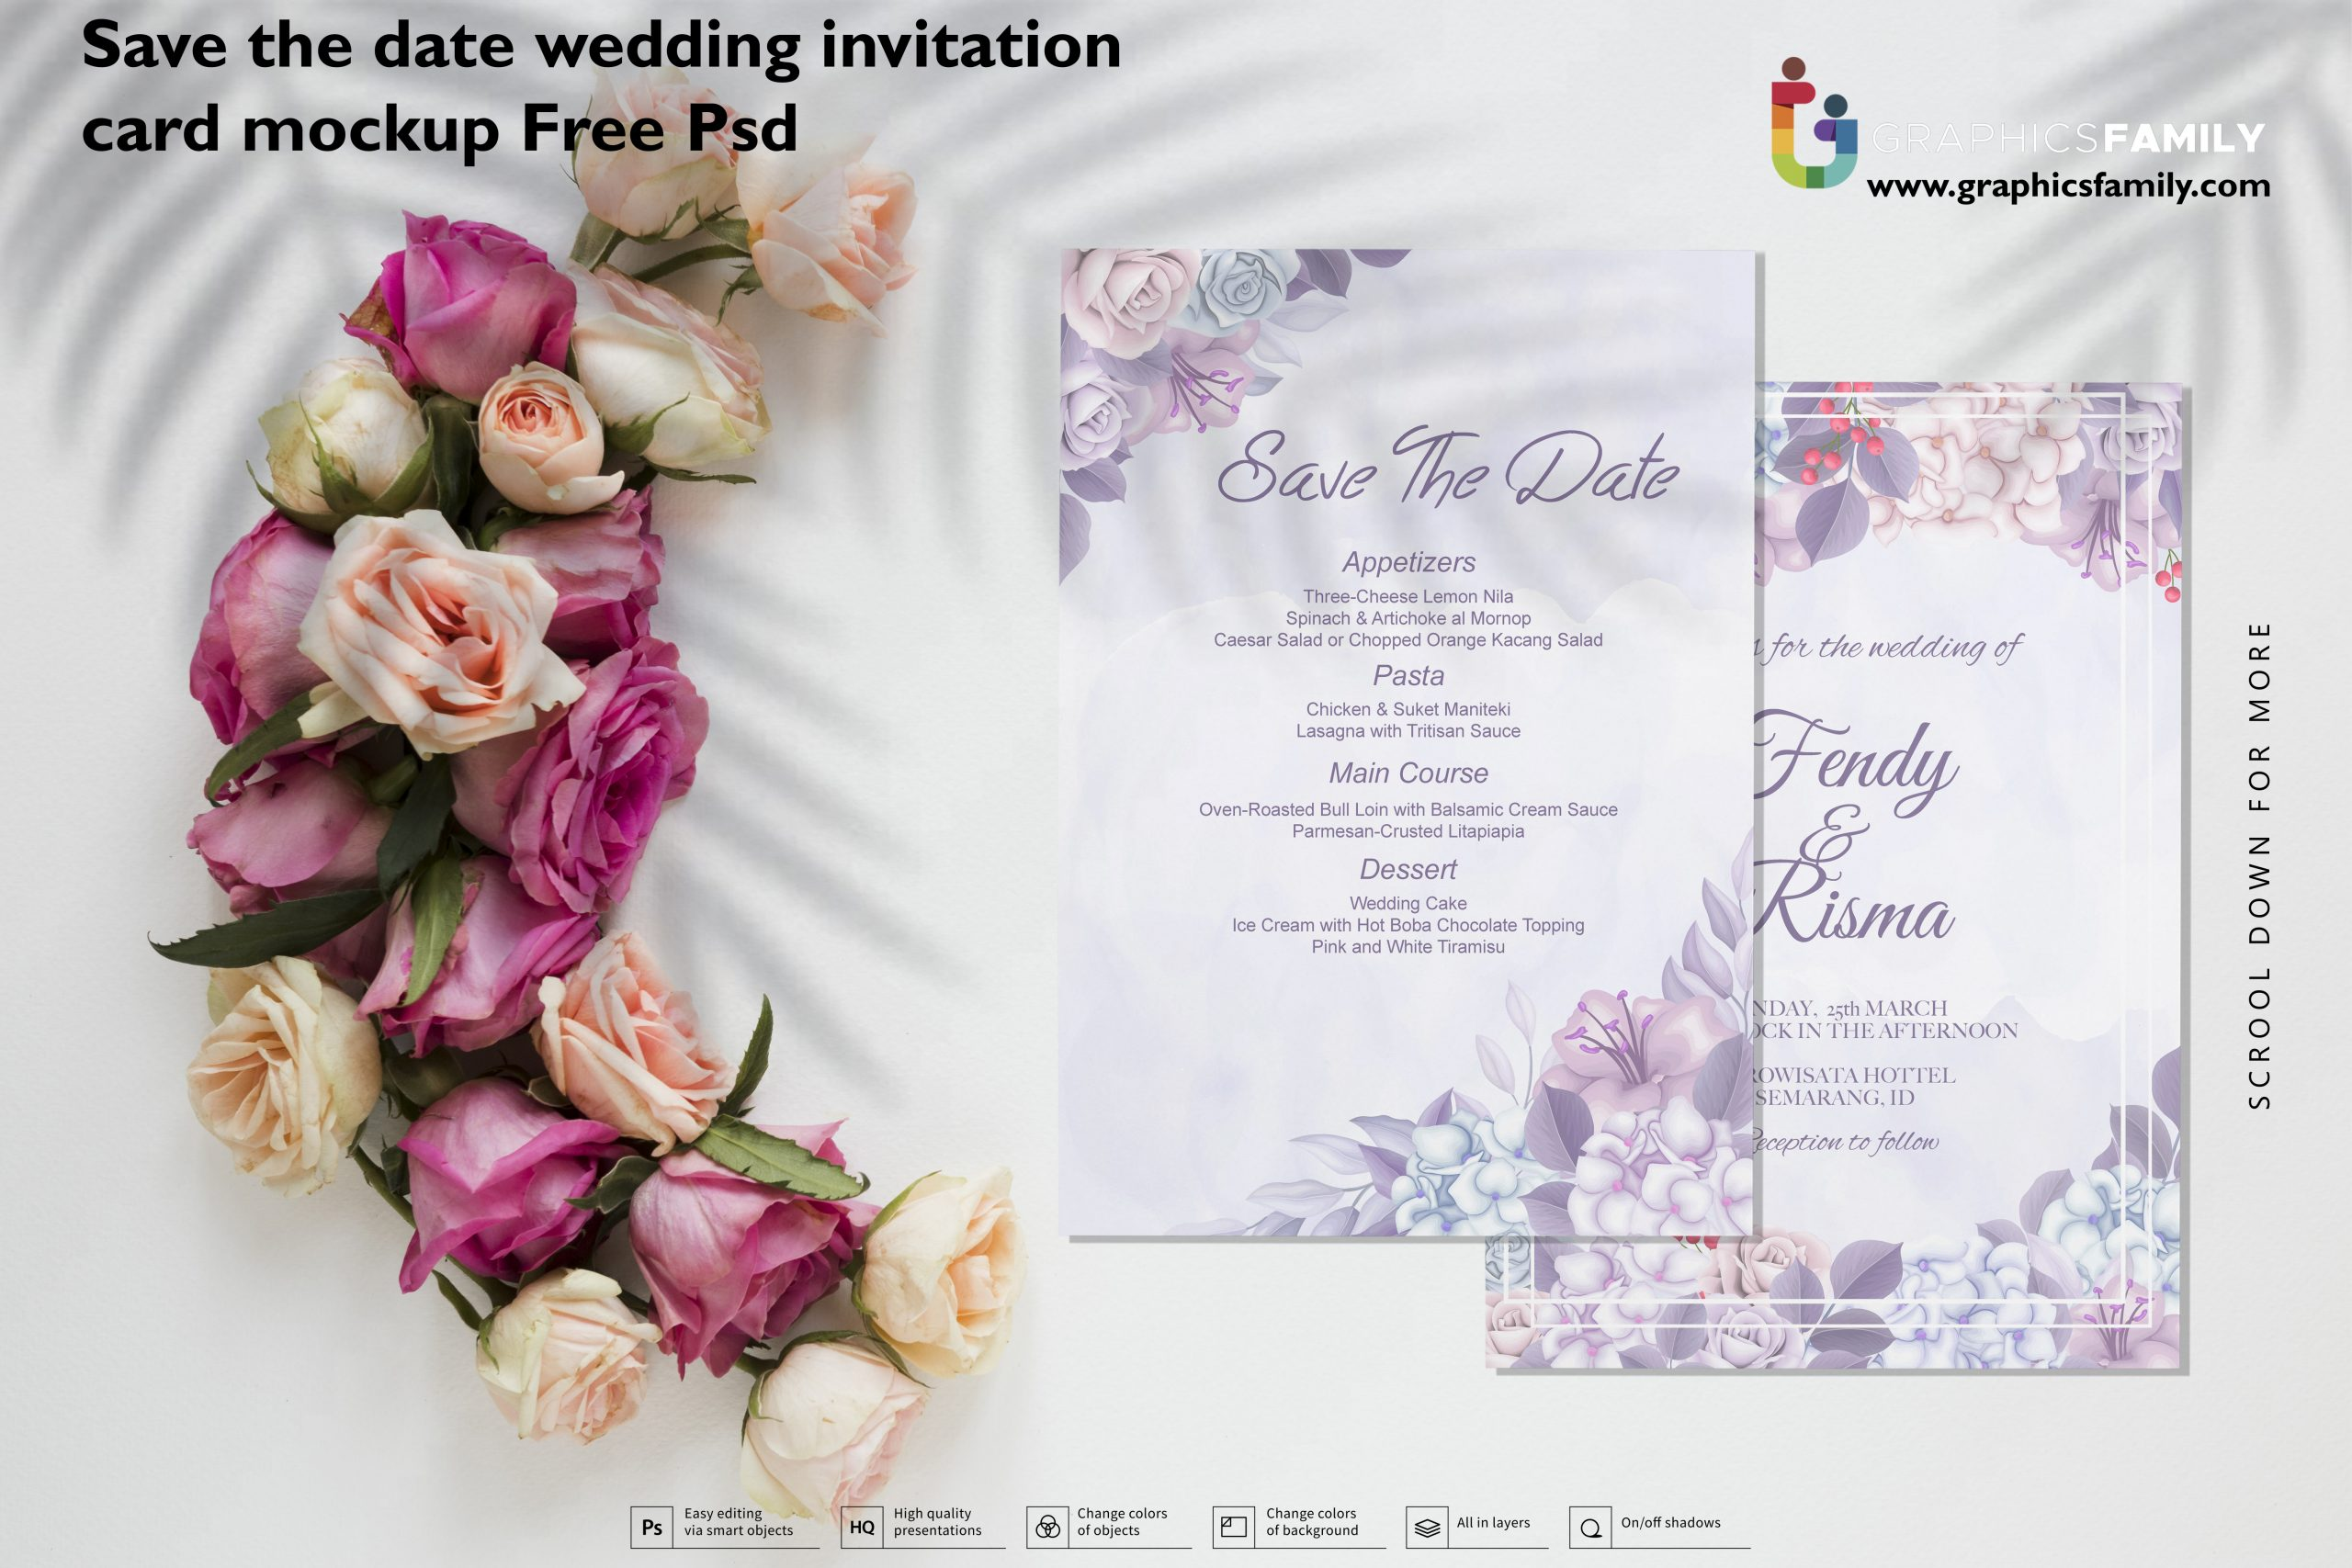 Save the date wedding invitation card mockup Free PSD Download